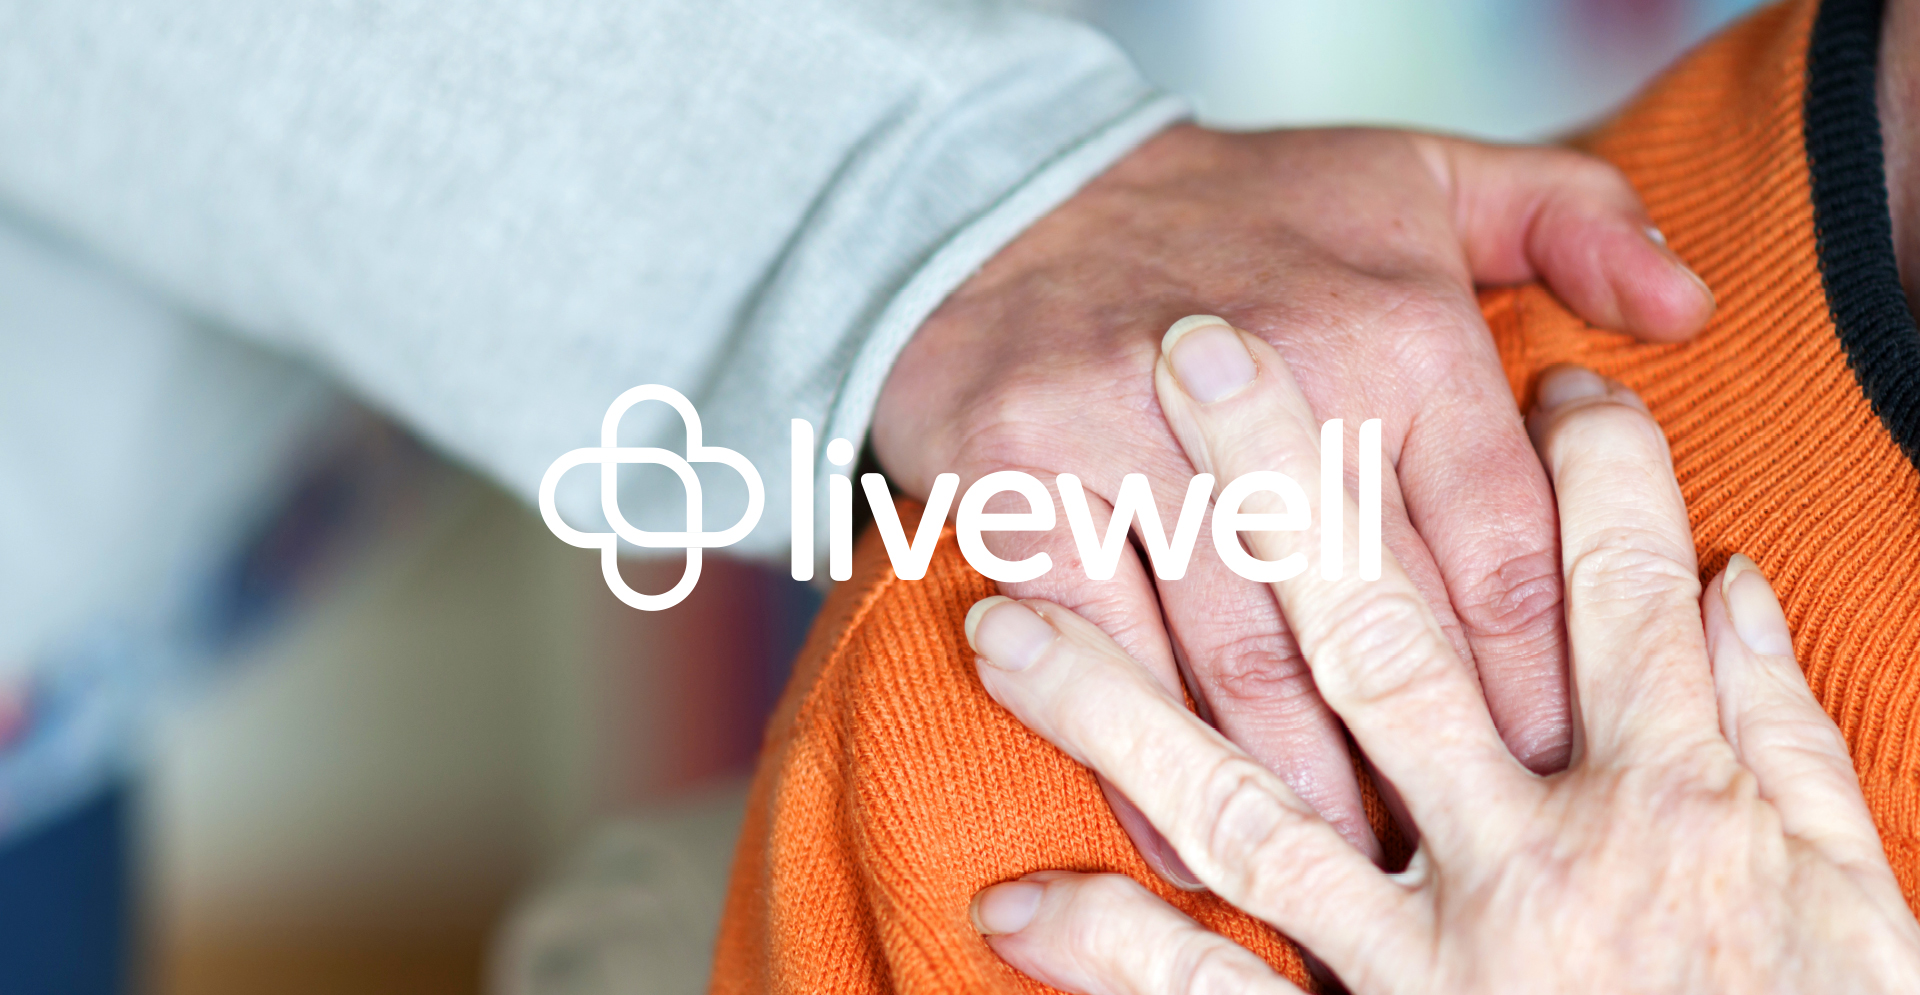 Livewell logo with hand image in the background